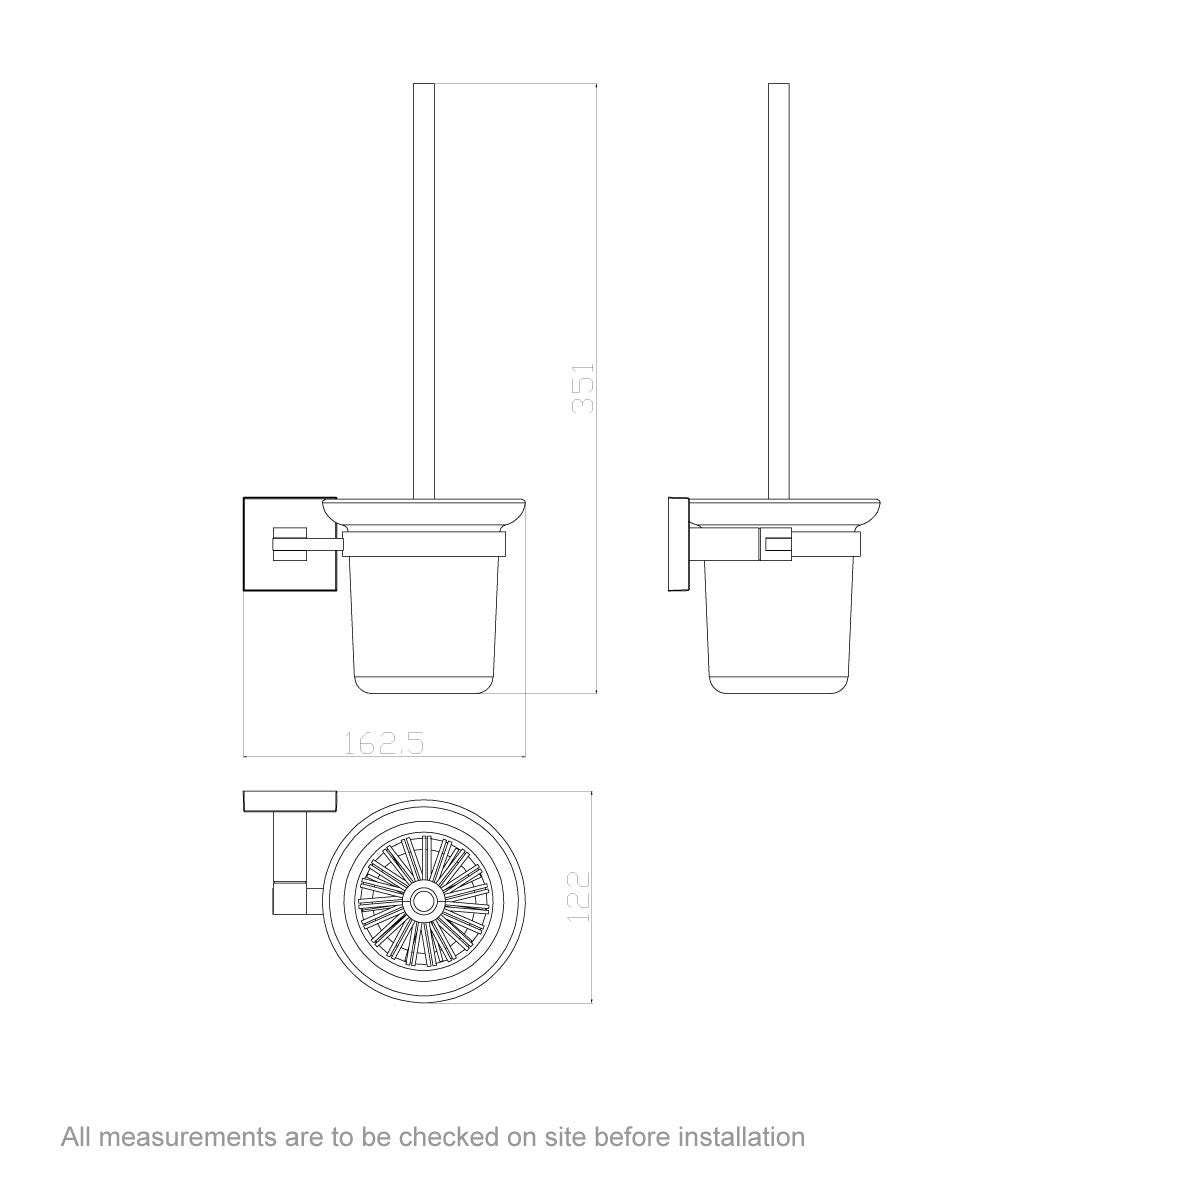 Dimensions for Orchard Flex toilet brush and holder